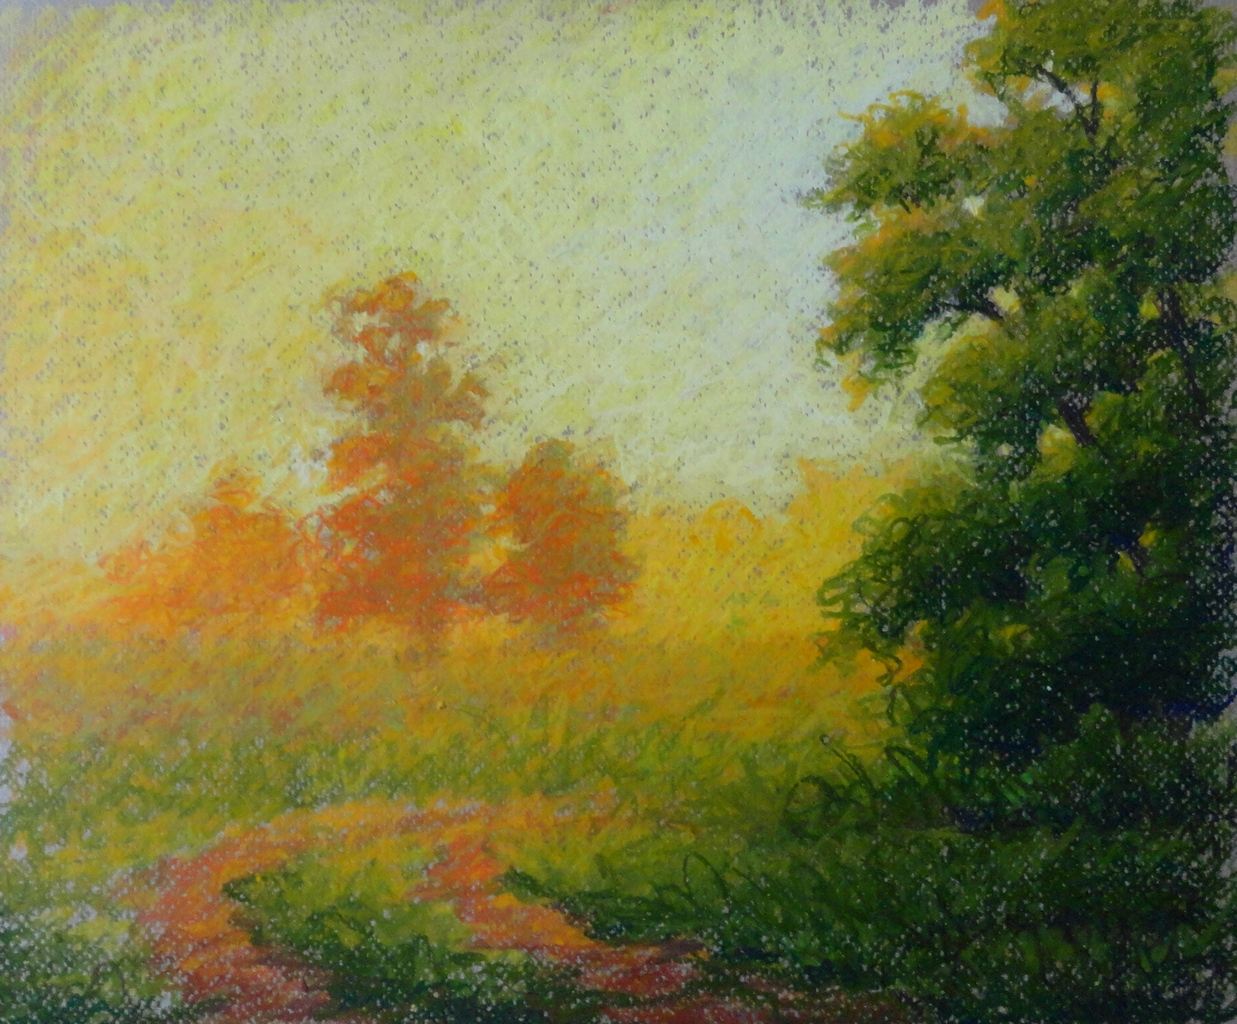 Last Light, 14x16 inches, oil pastel on paper